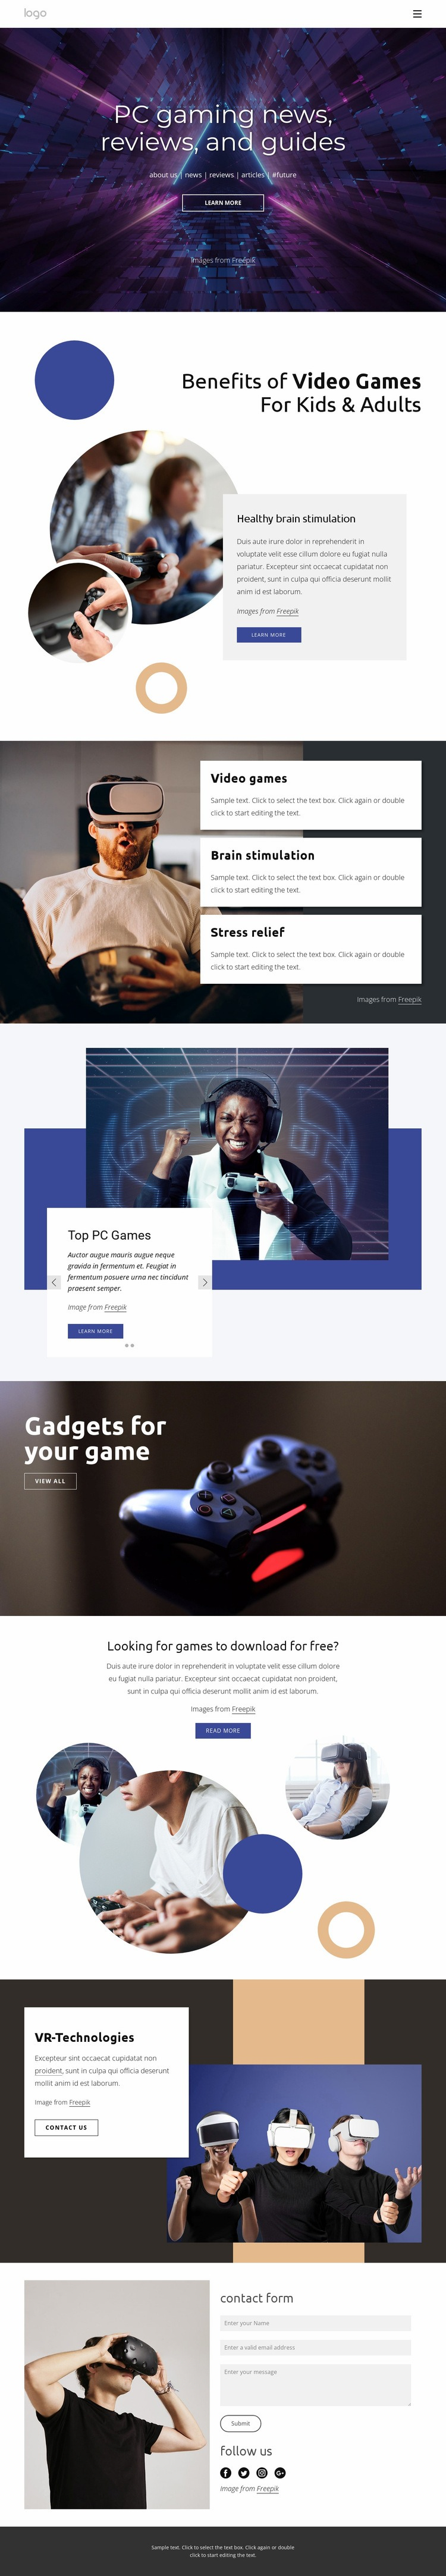 PC gaming news Html Code Example